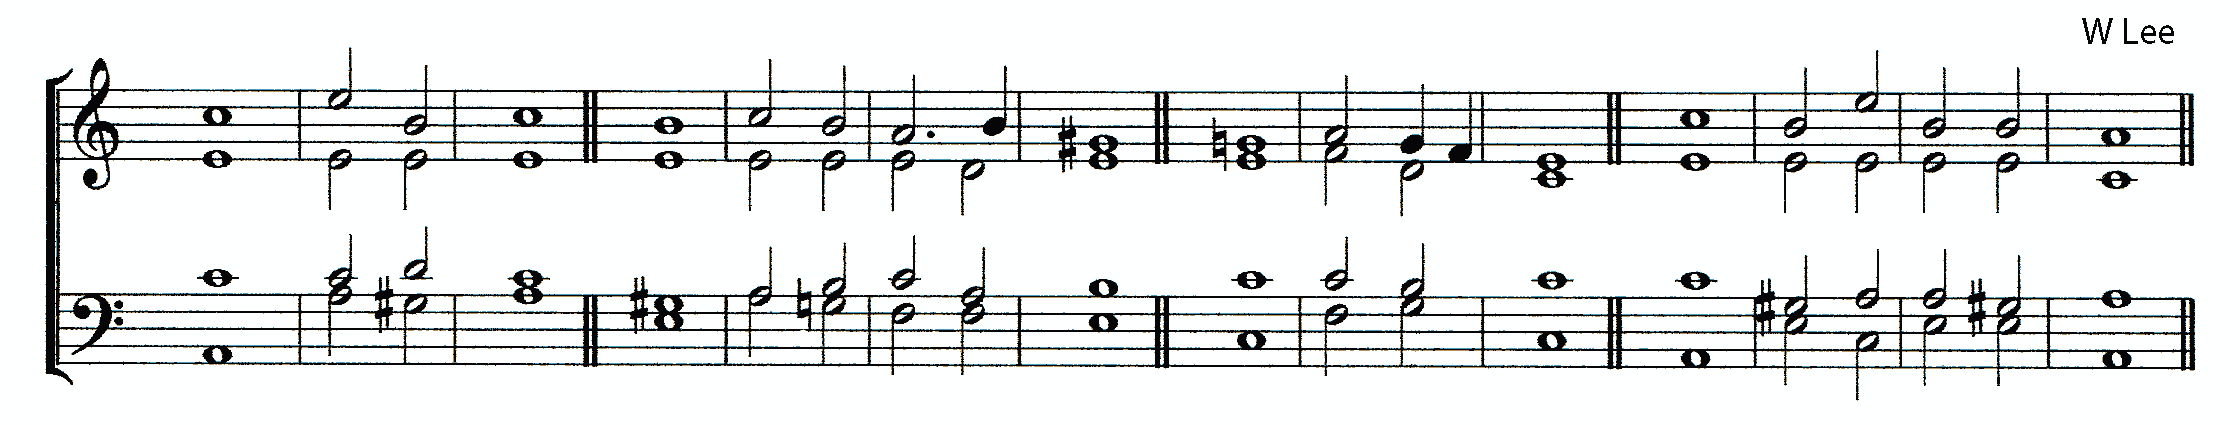 Double chant in A minor by William Lee